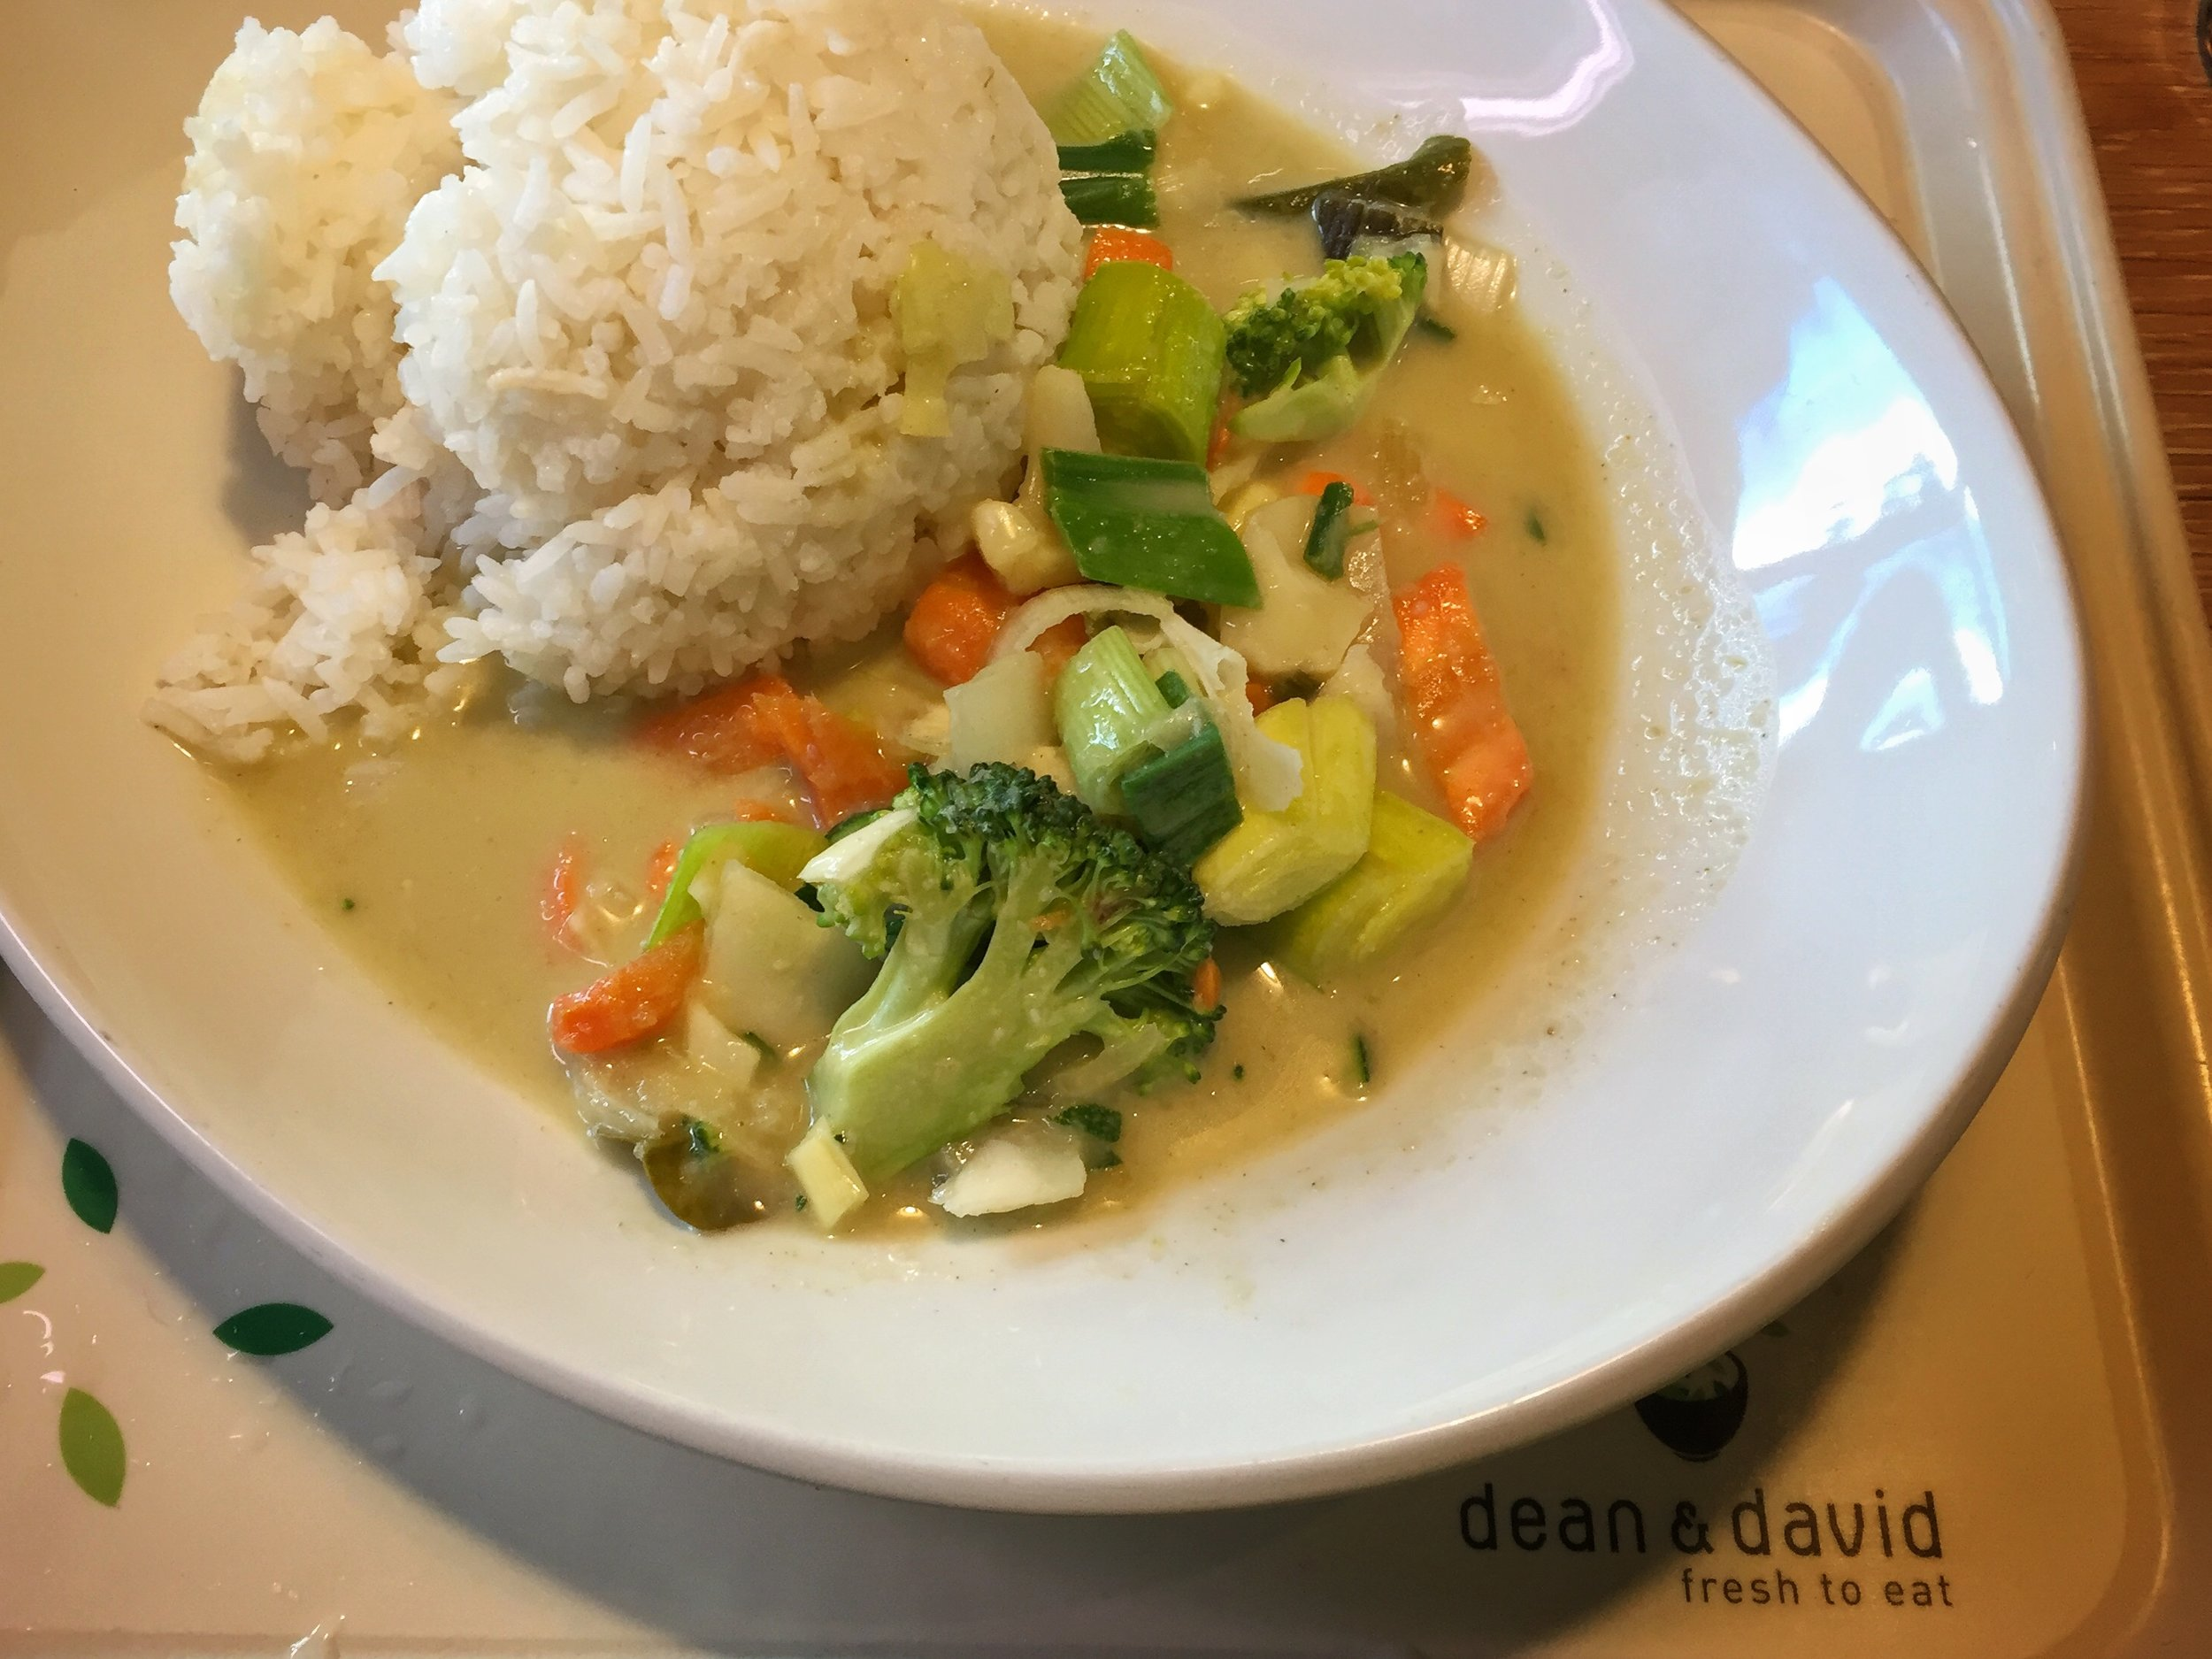 veggies & rice at Dean & David (Berlin)